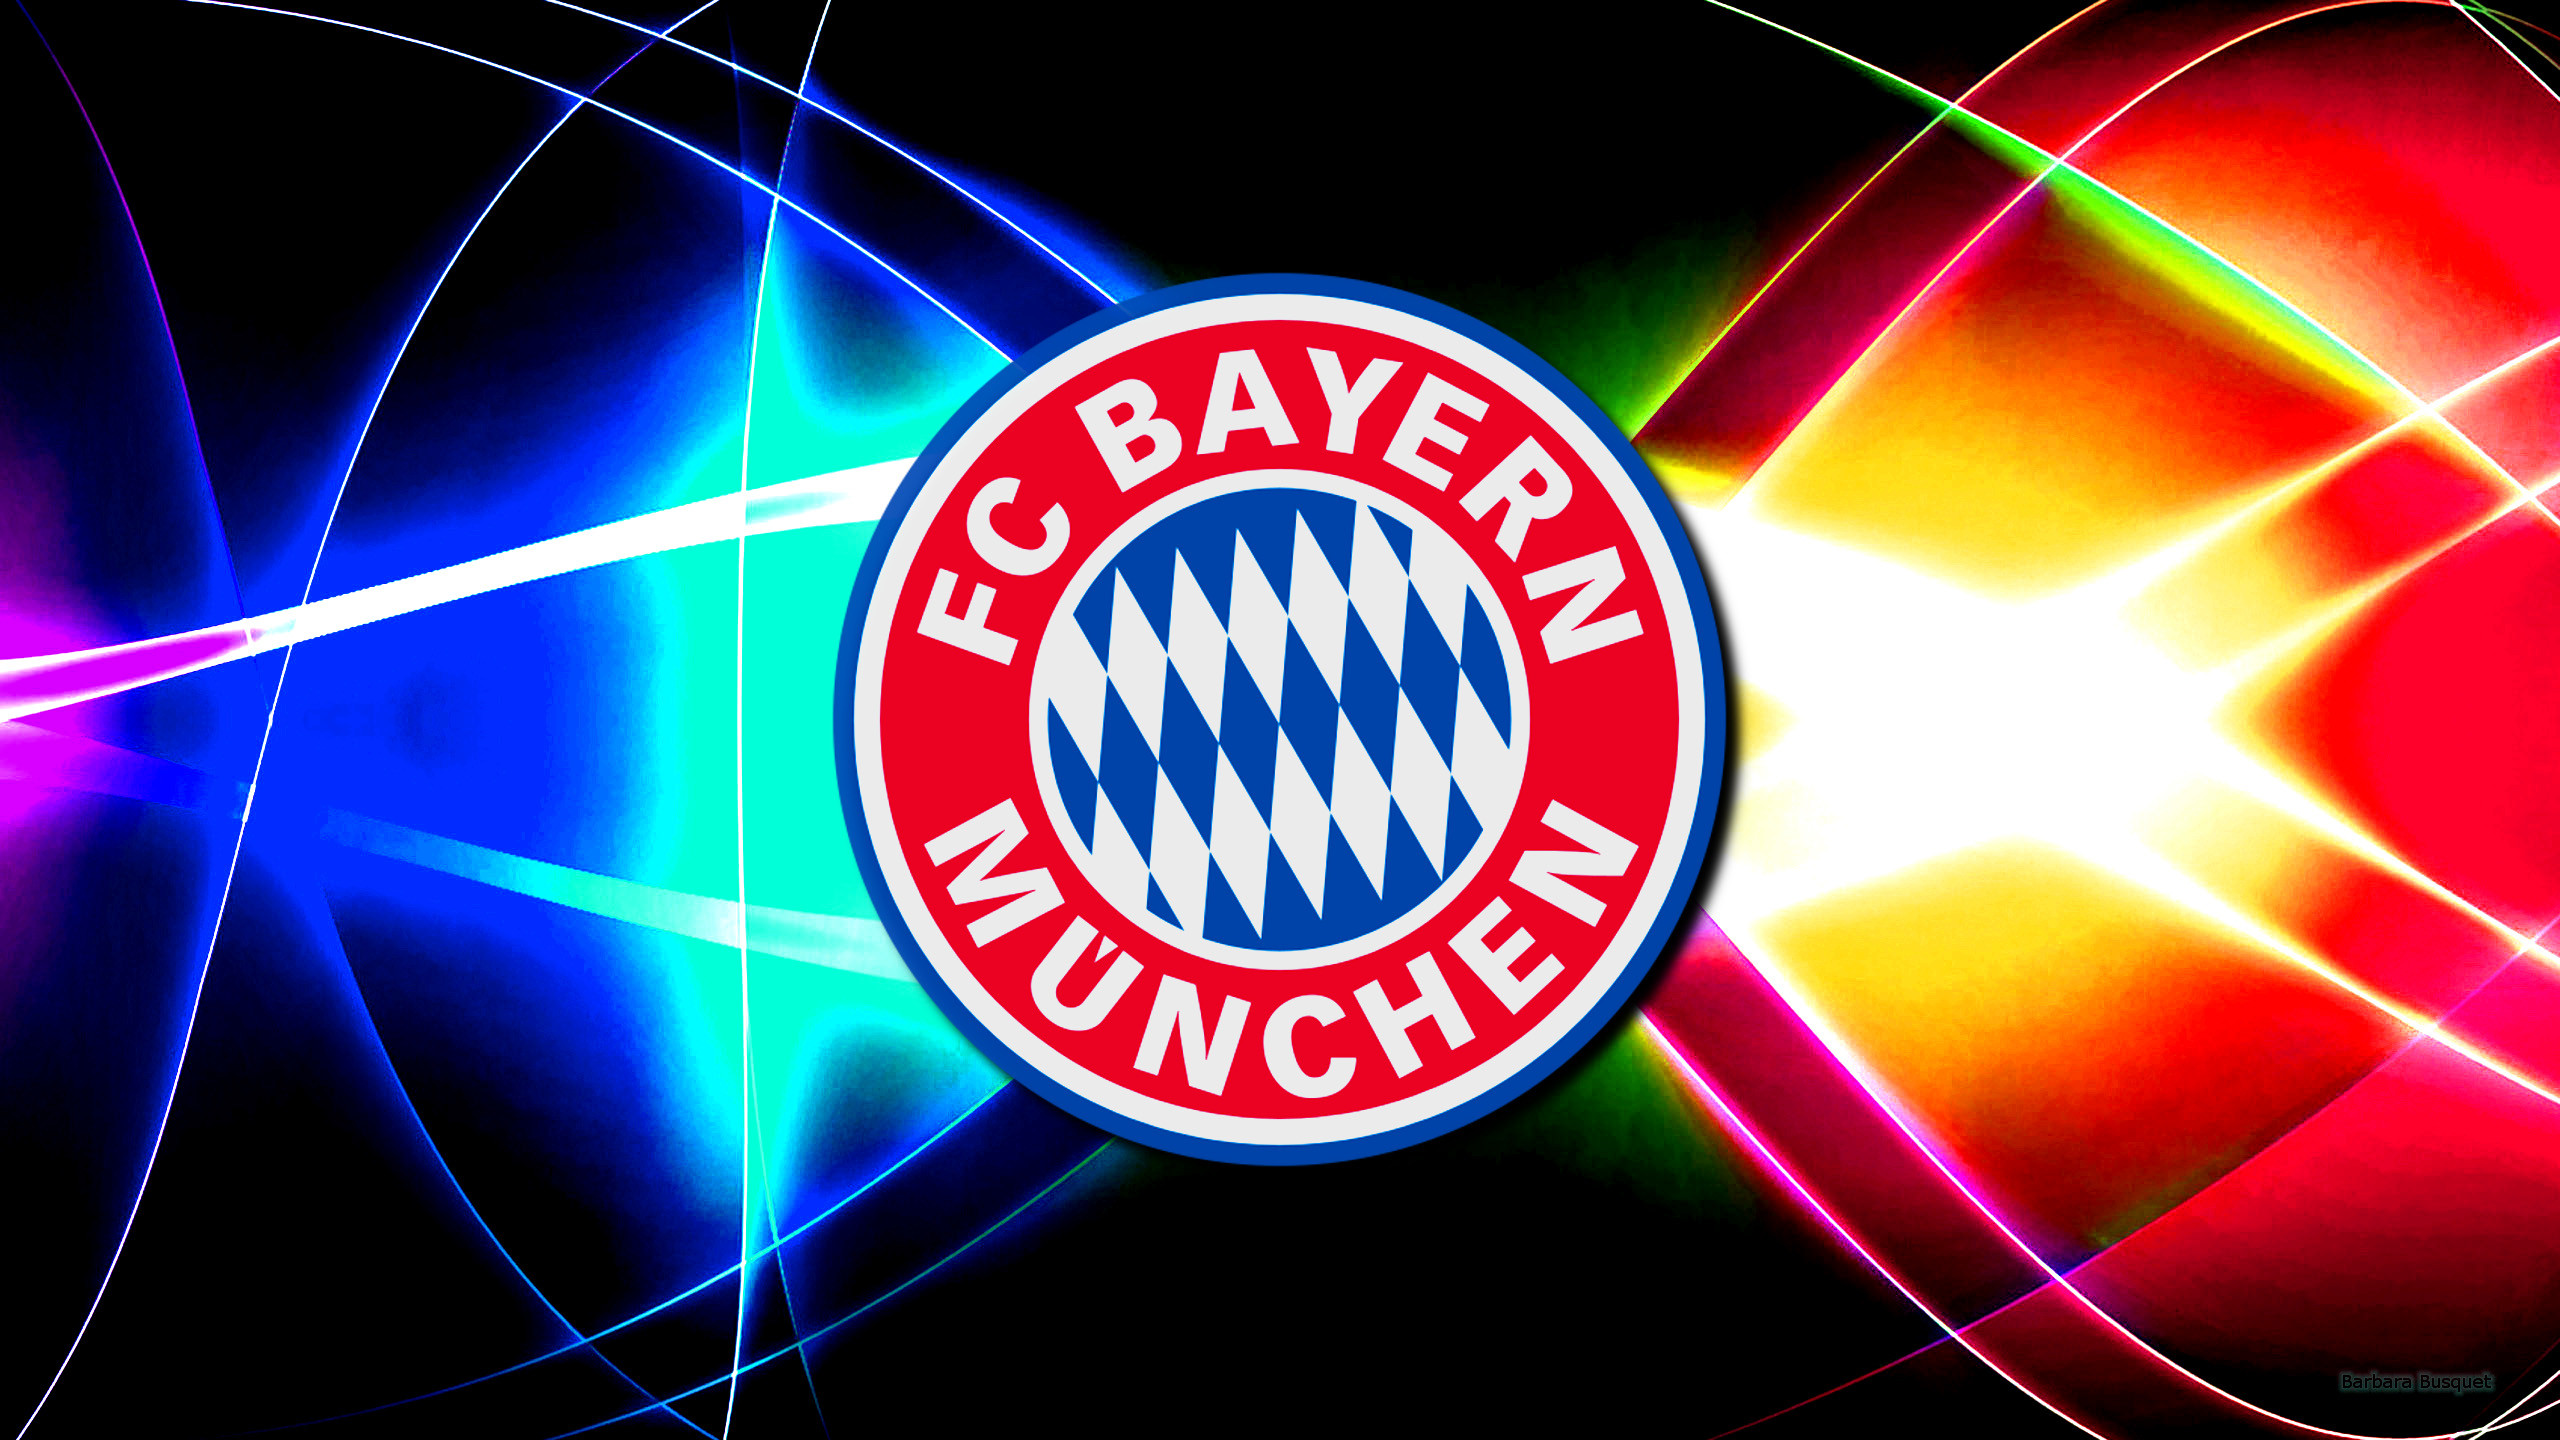 Bayern Munchen Football Club Wallpaper: FC Bayern Munchen Wallpapers